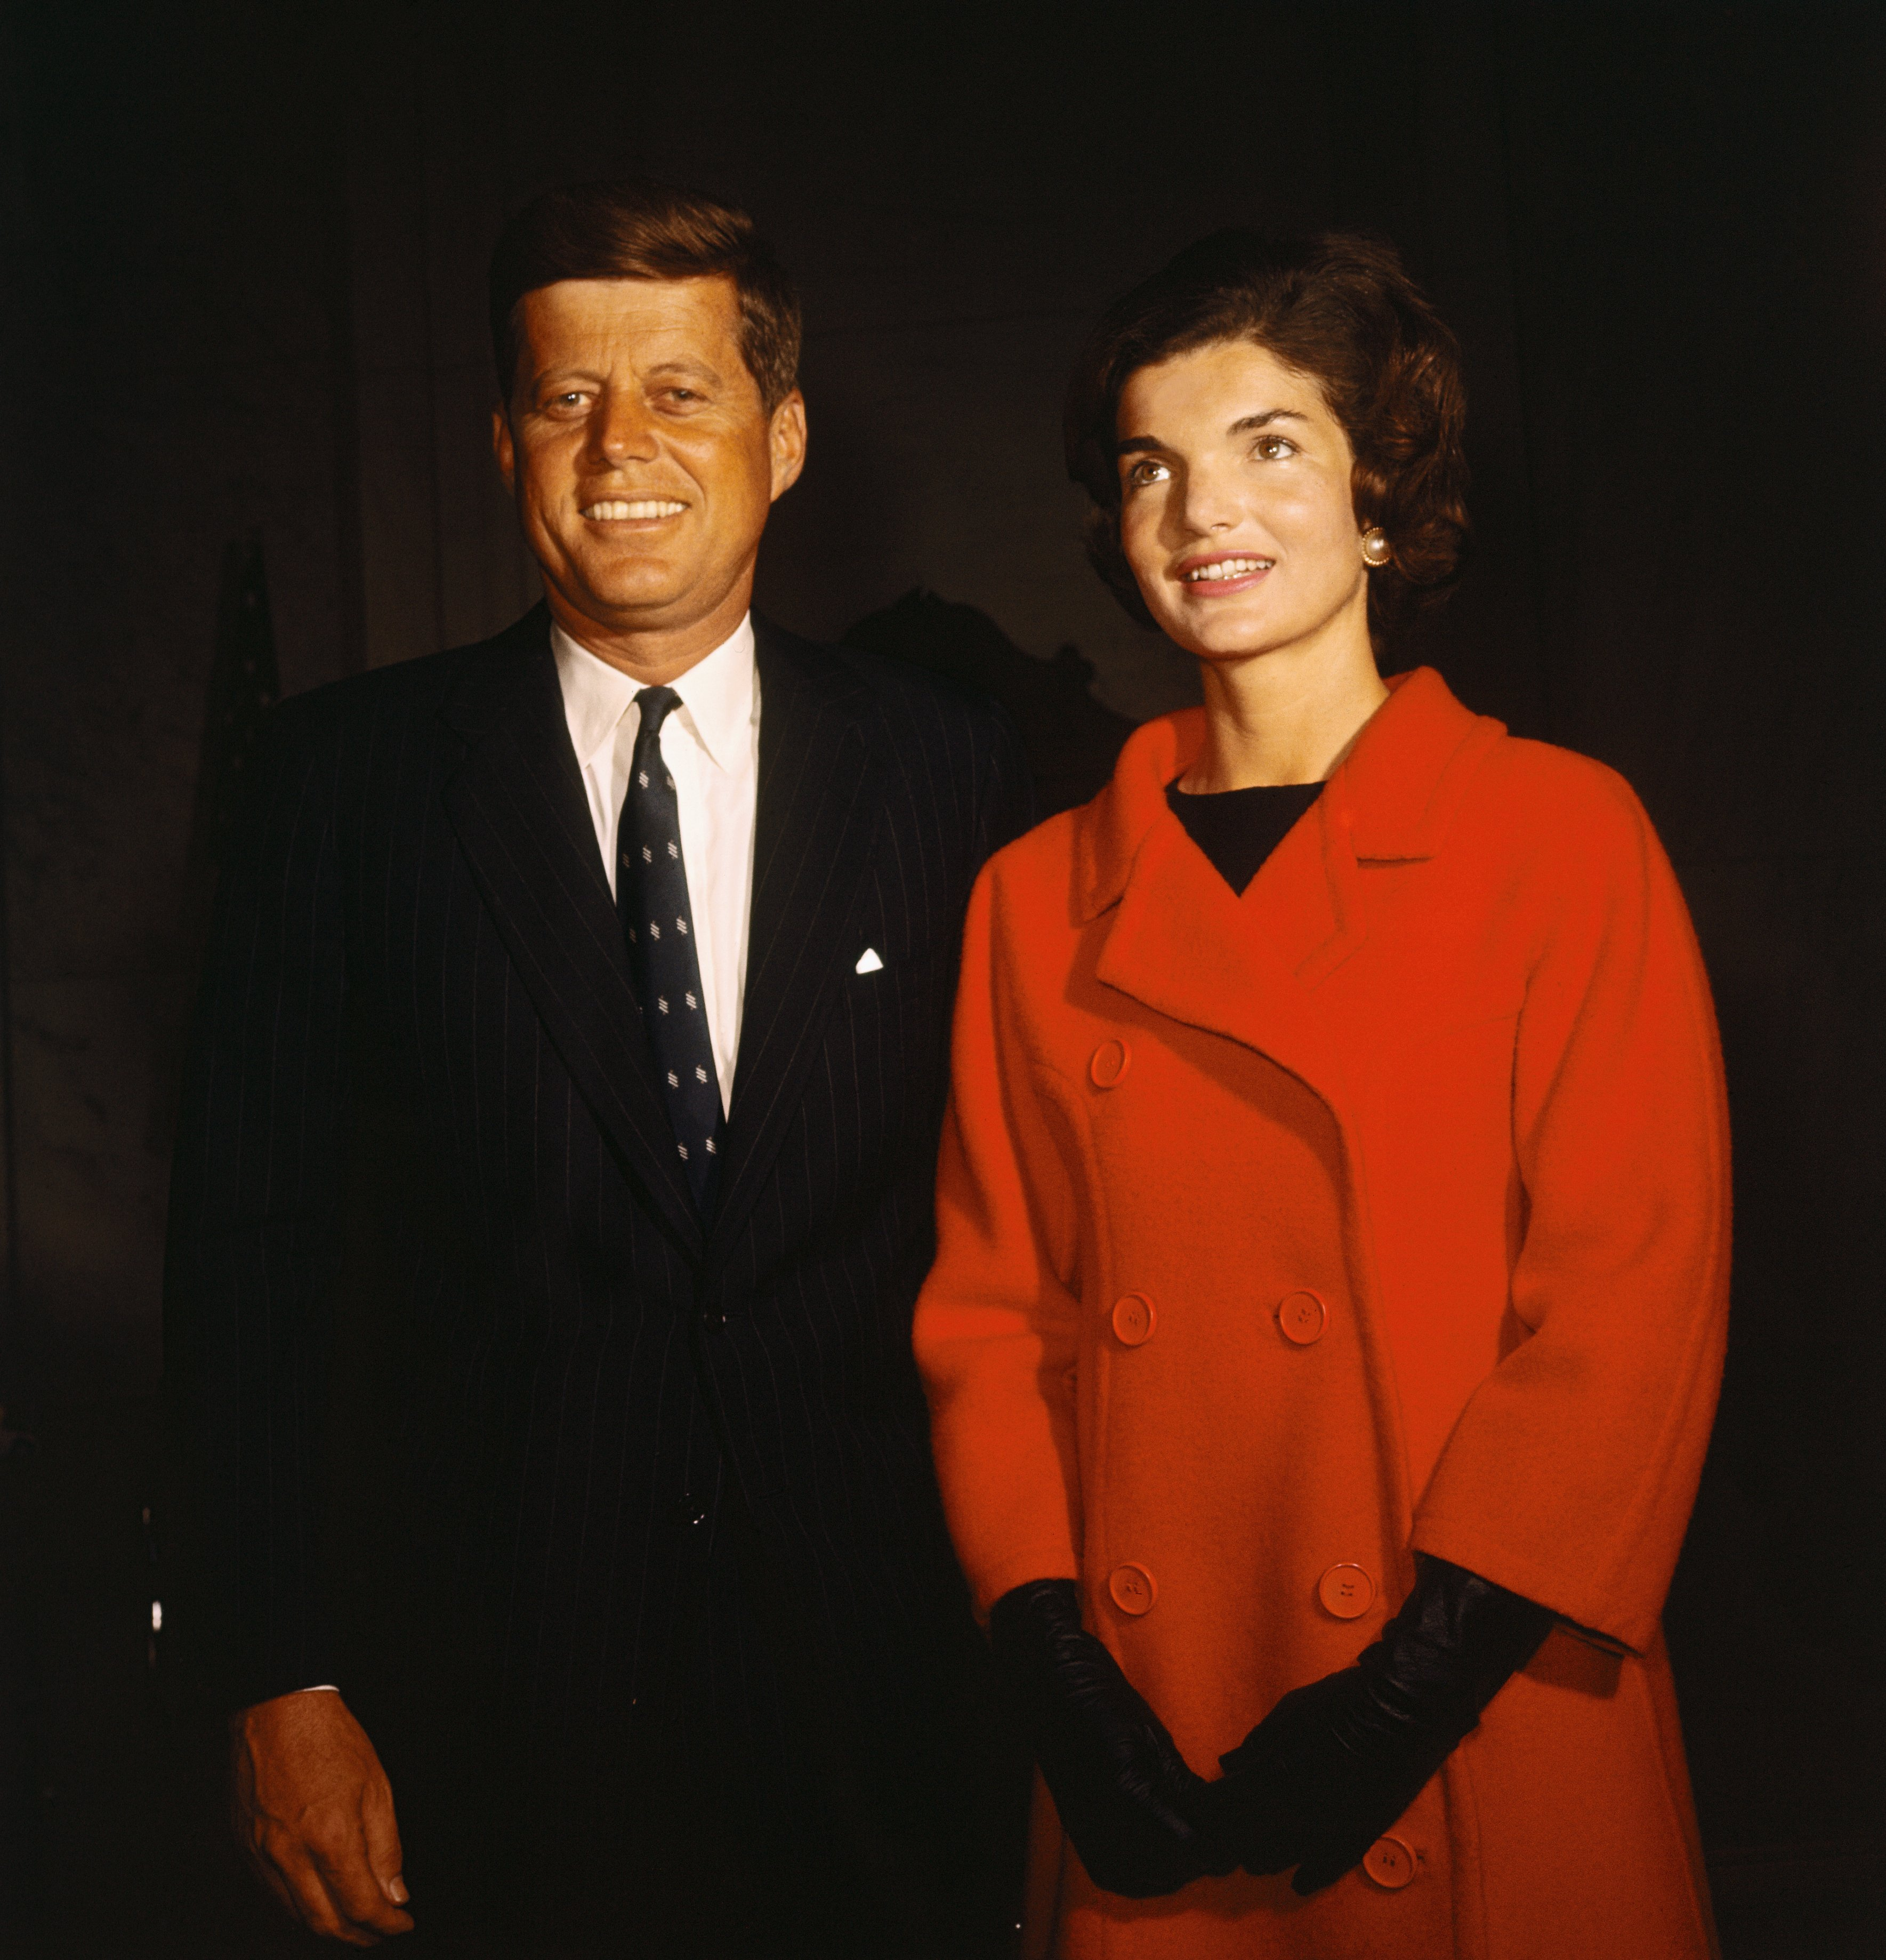 John F. Kennedy and wife Jacqueline Kennedy during his announcement for seeking presidential nomination on January 2, 1960   Photo: Getty Images